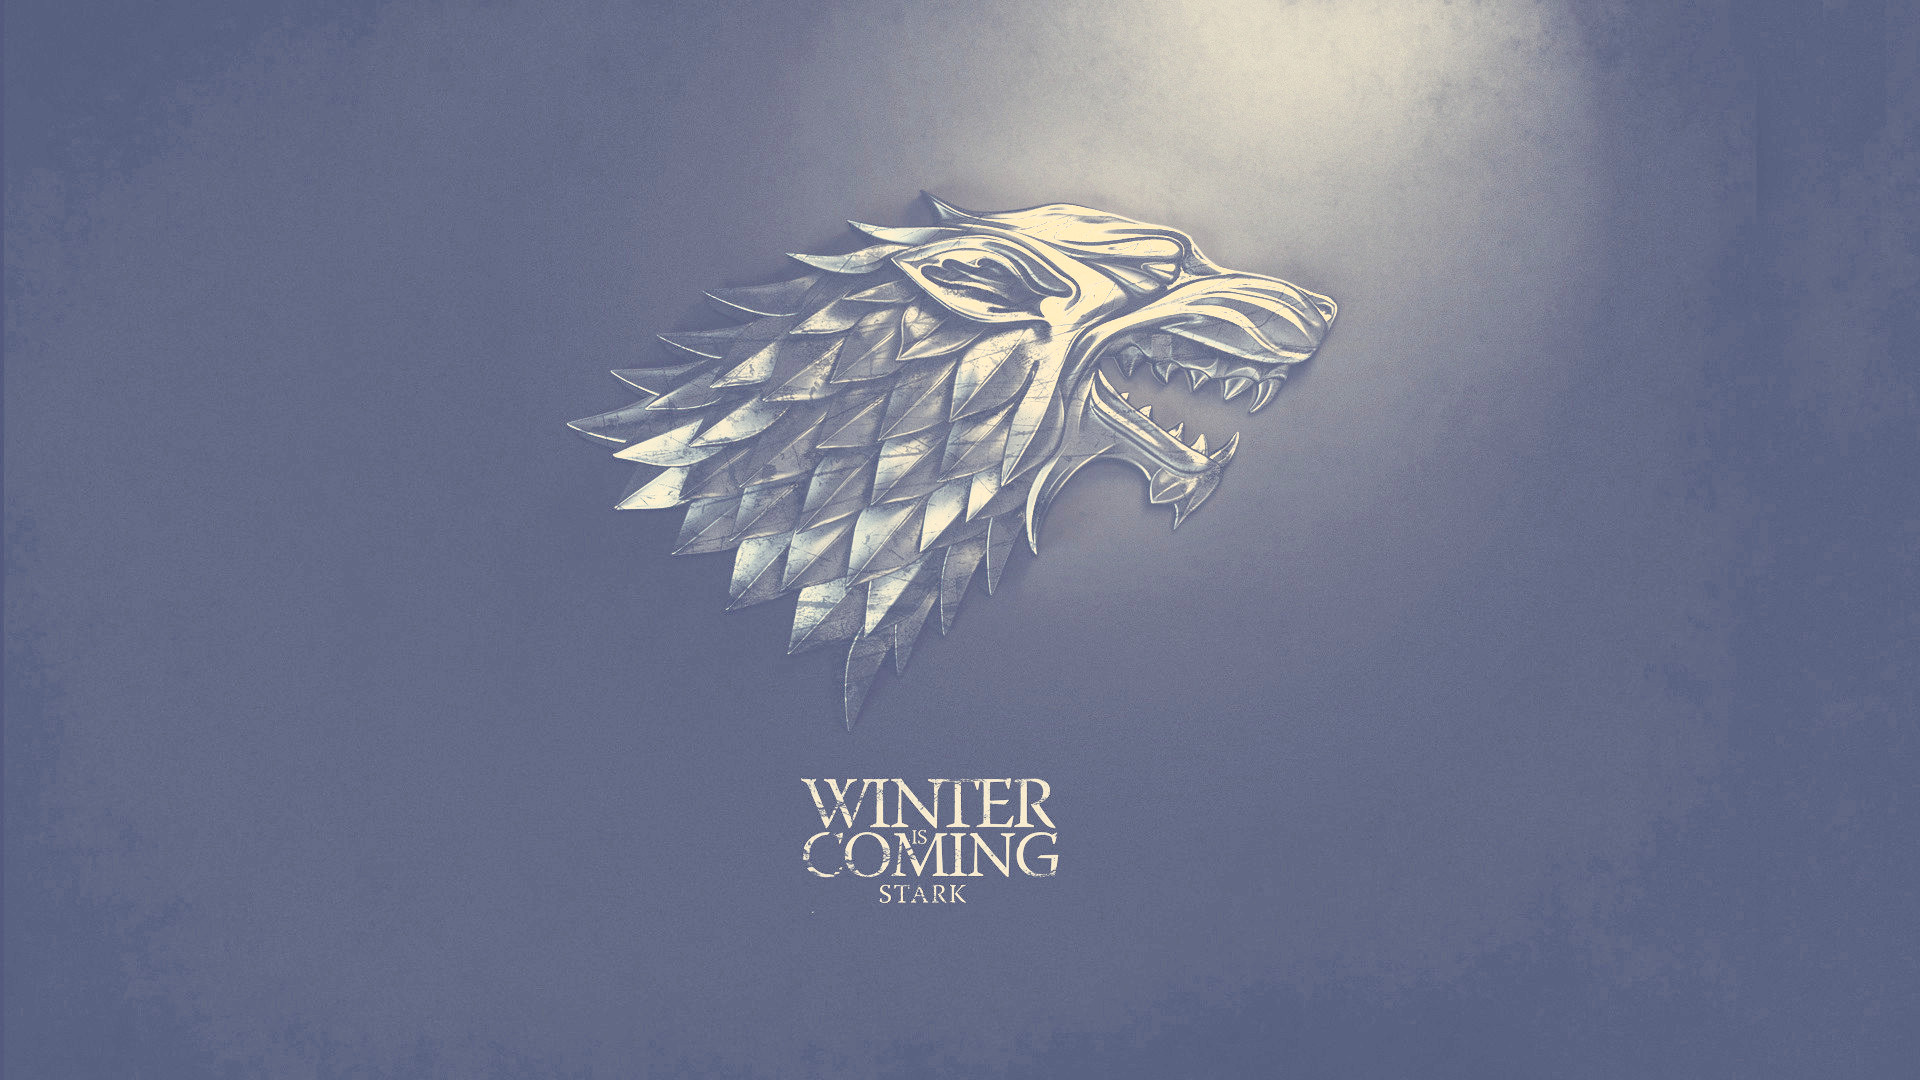 Winter is Coming Stark Nashville HD Wallpaper for TV 1920x1080